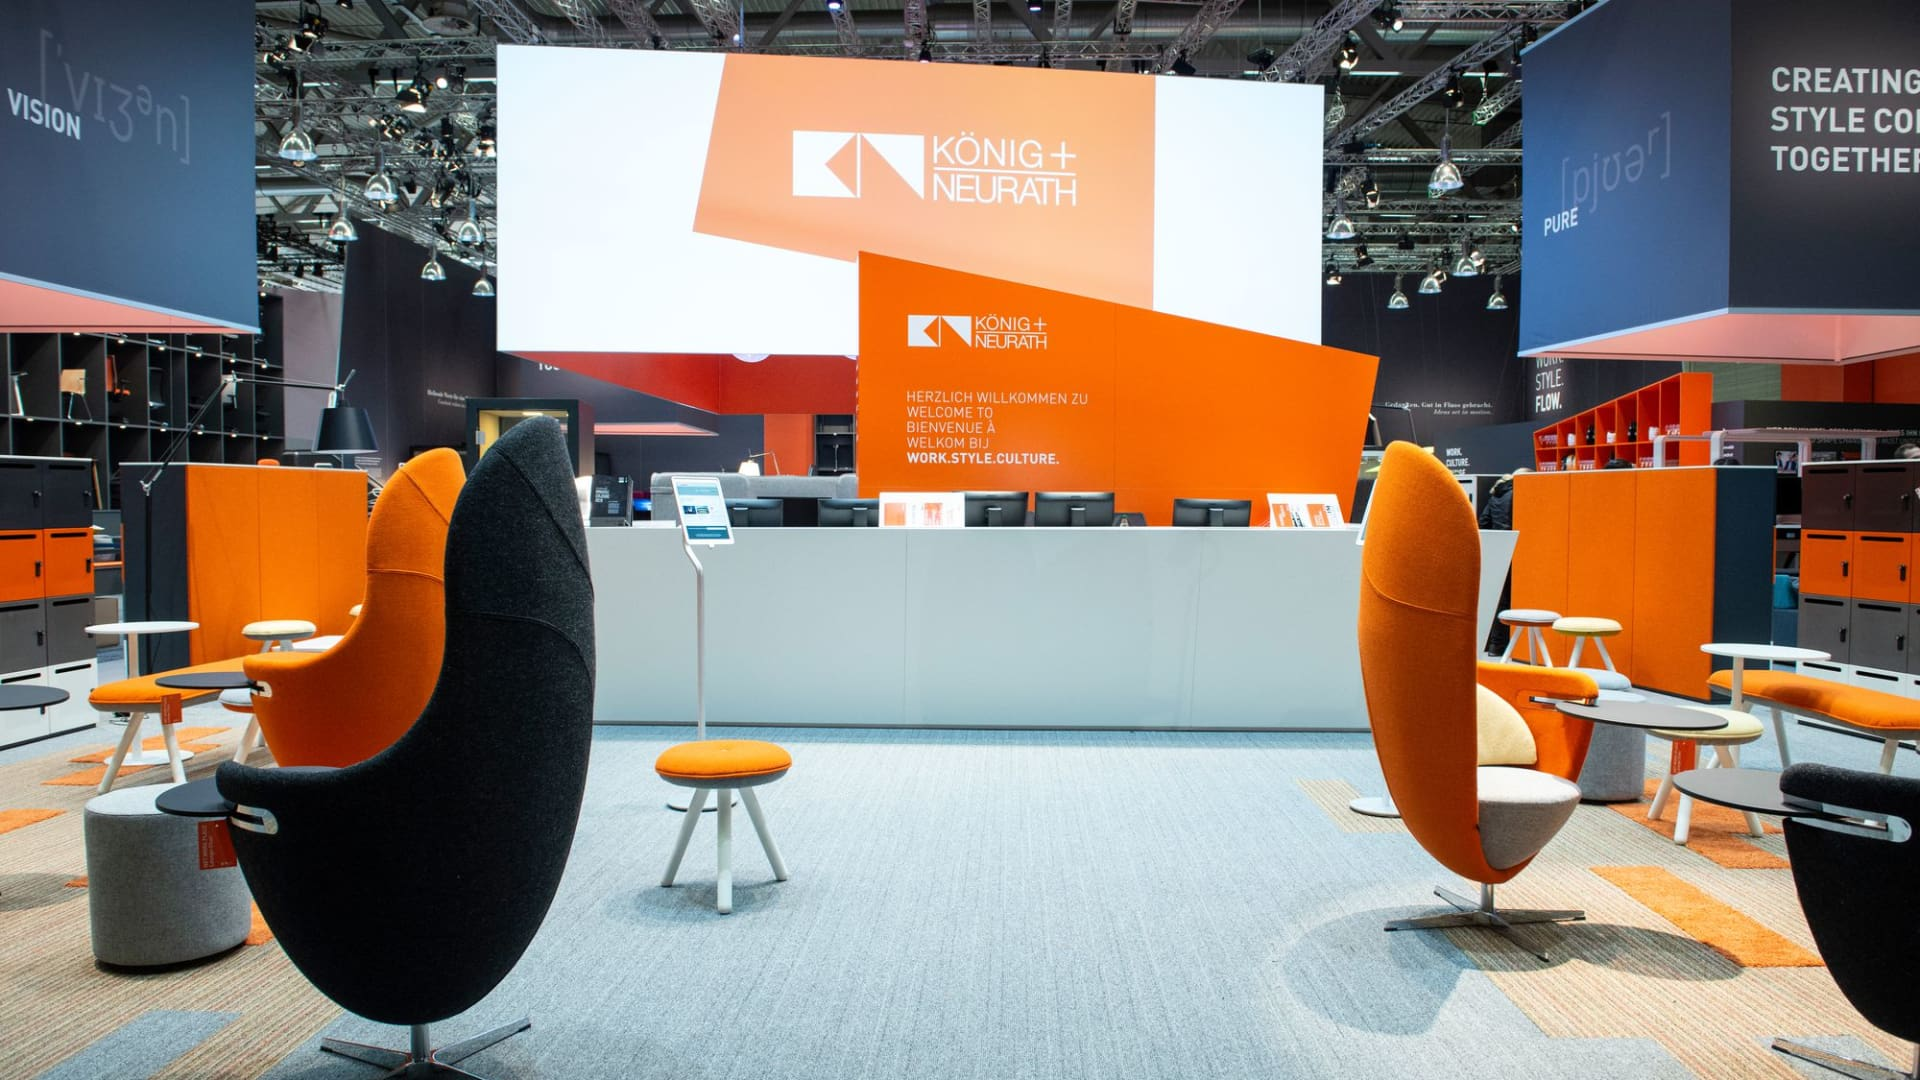 König + Neurath at ORGATEC 2018